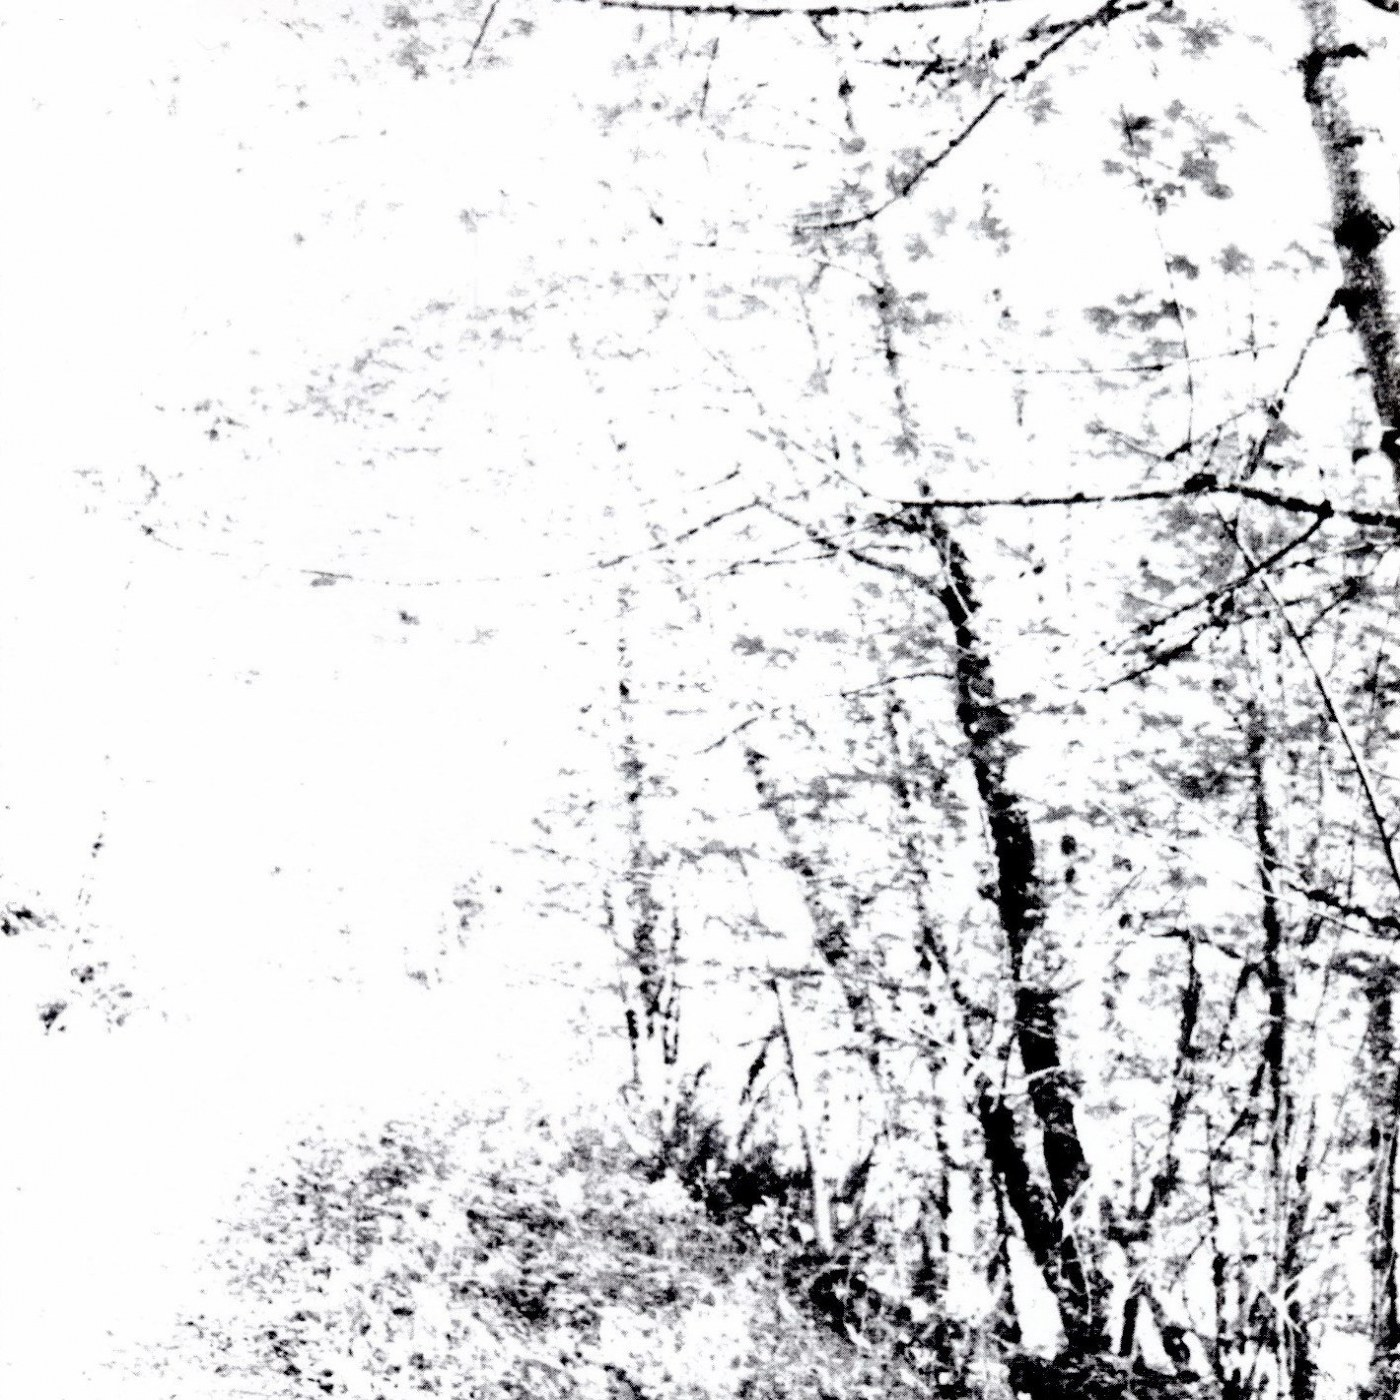 Review for Agalloch - The White EP